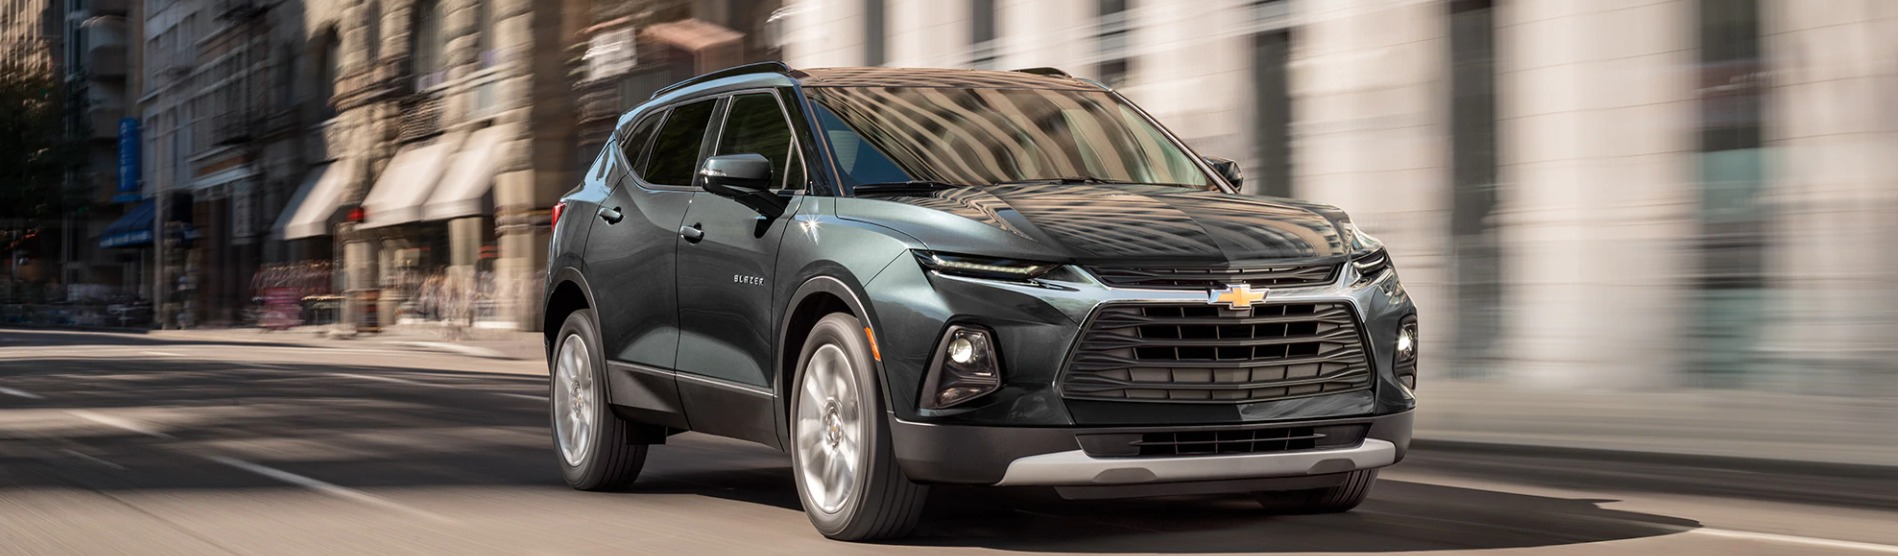 2020 Chevrolet Blazer Lease near Detroit, MI